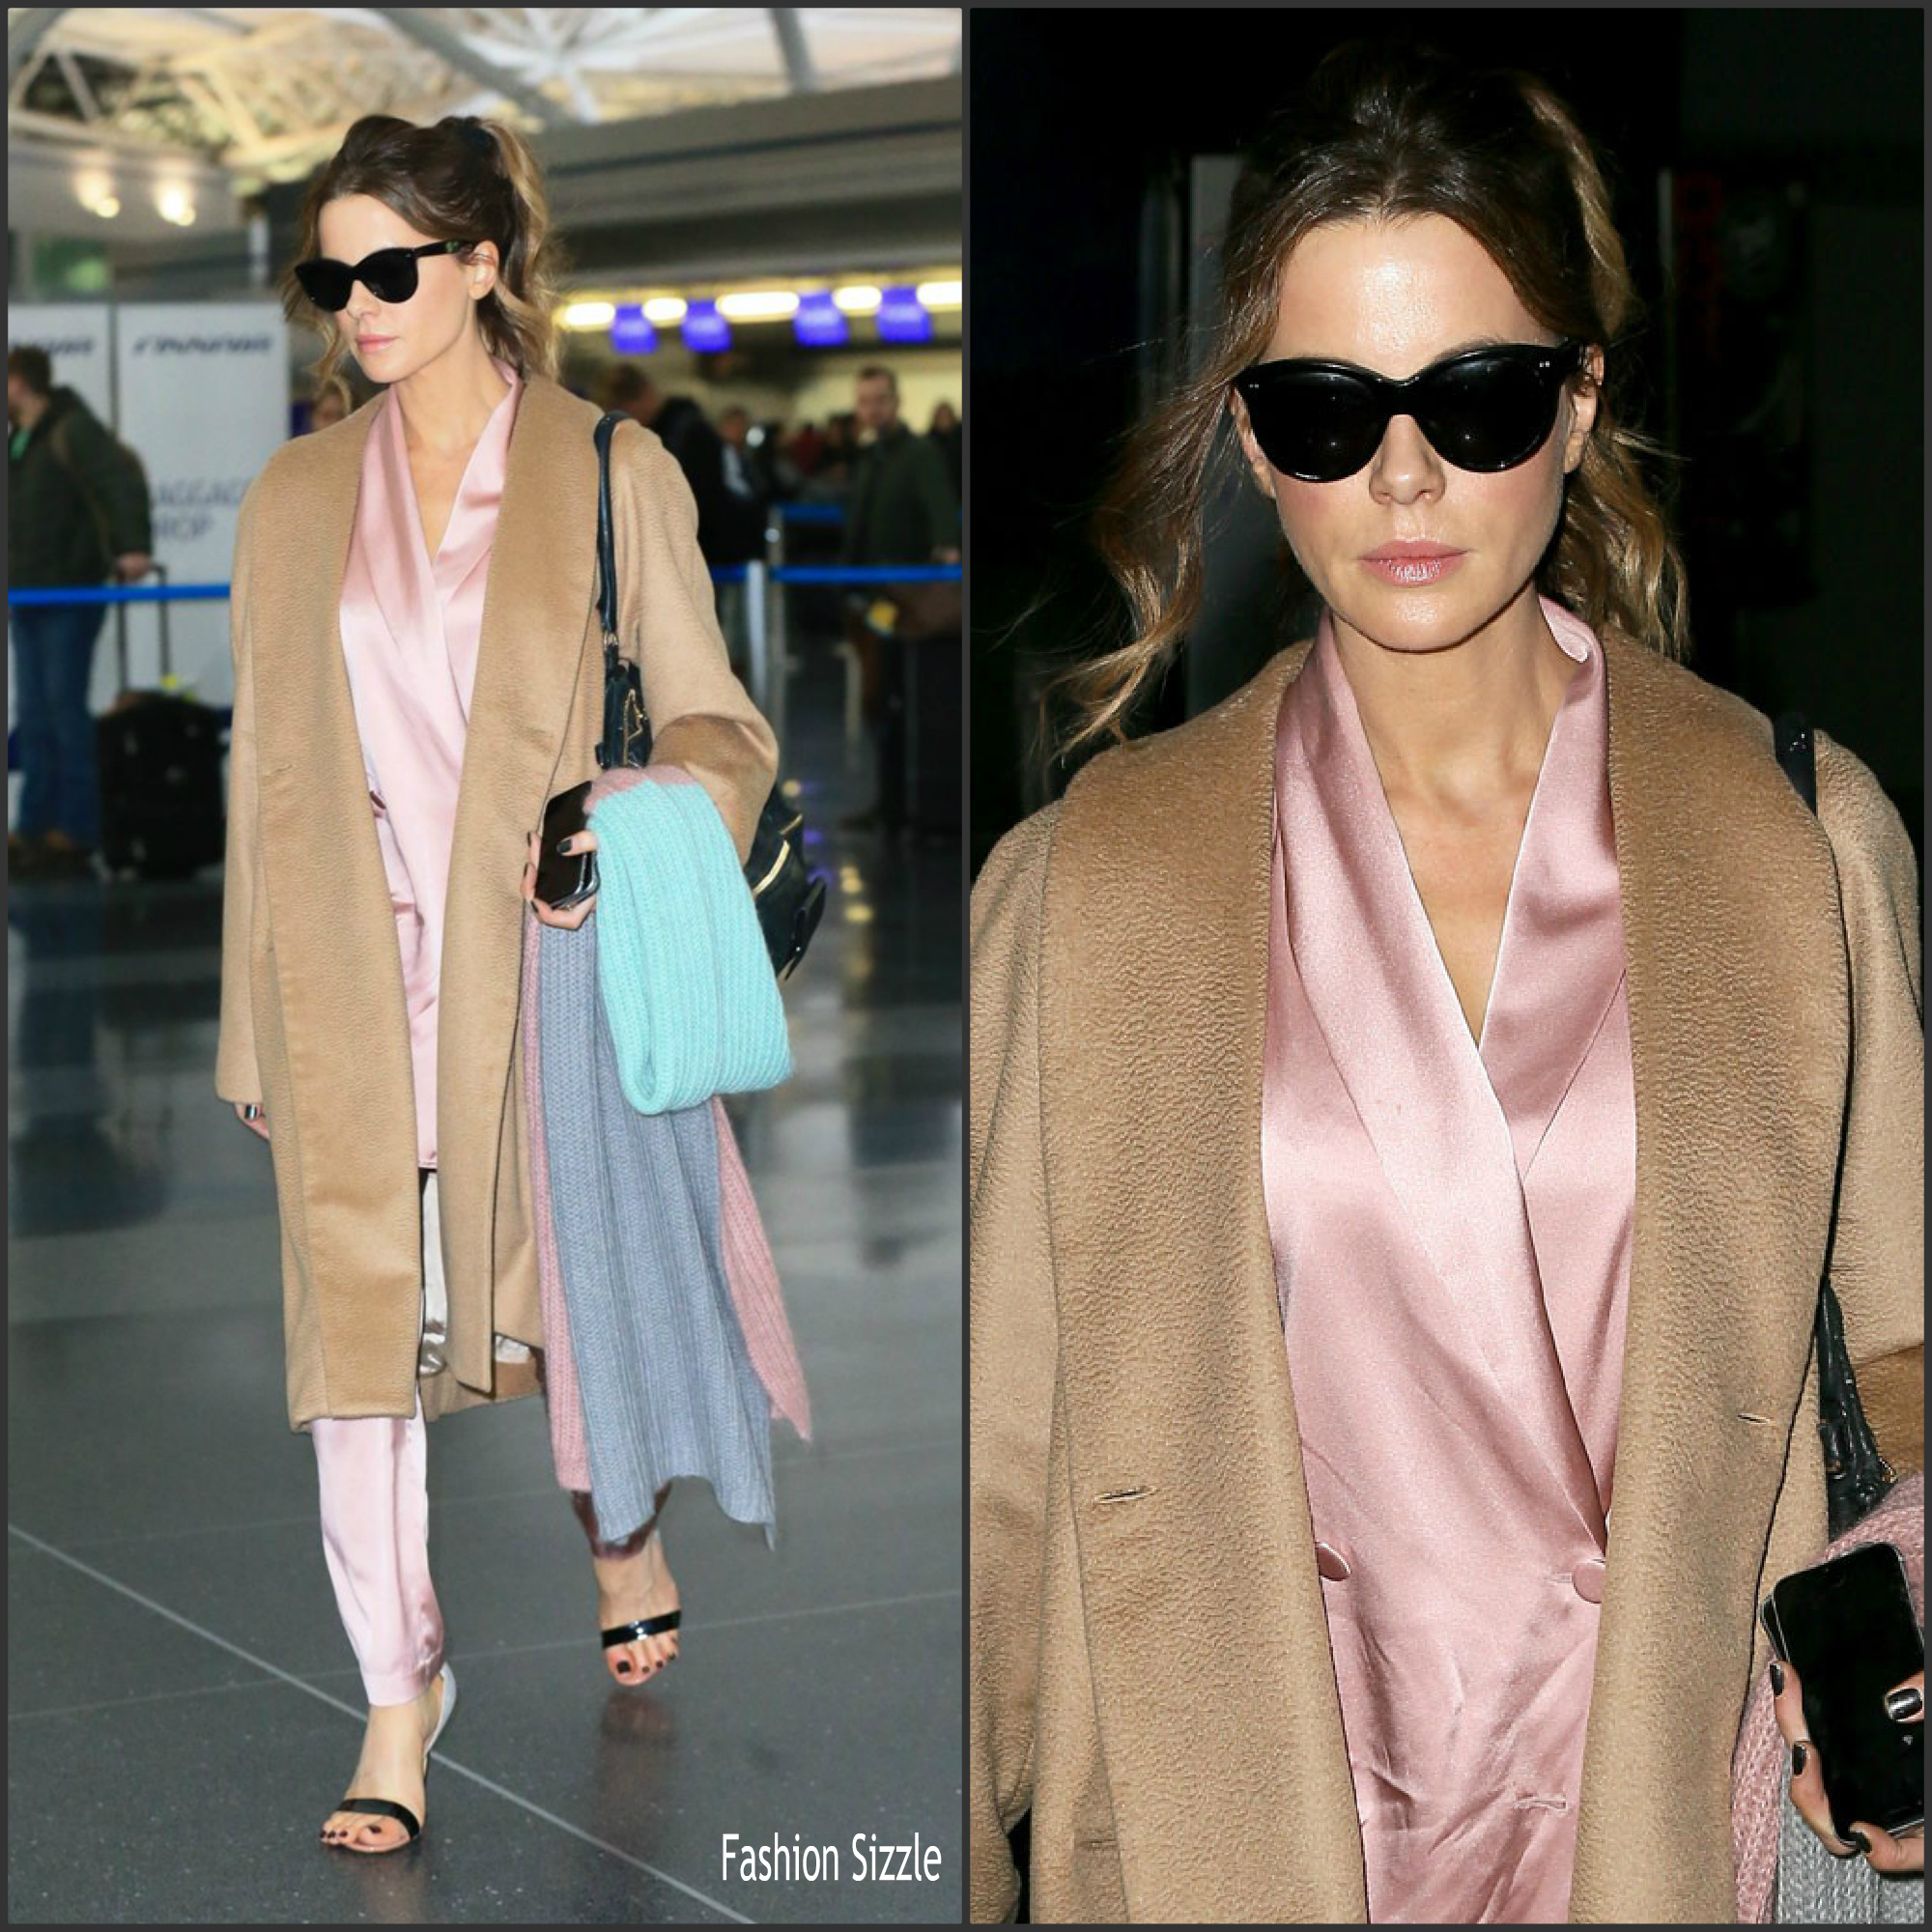 kate-beckinsale-in-silk-pajamas-at-jfk